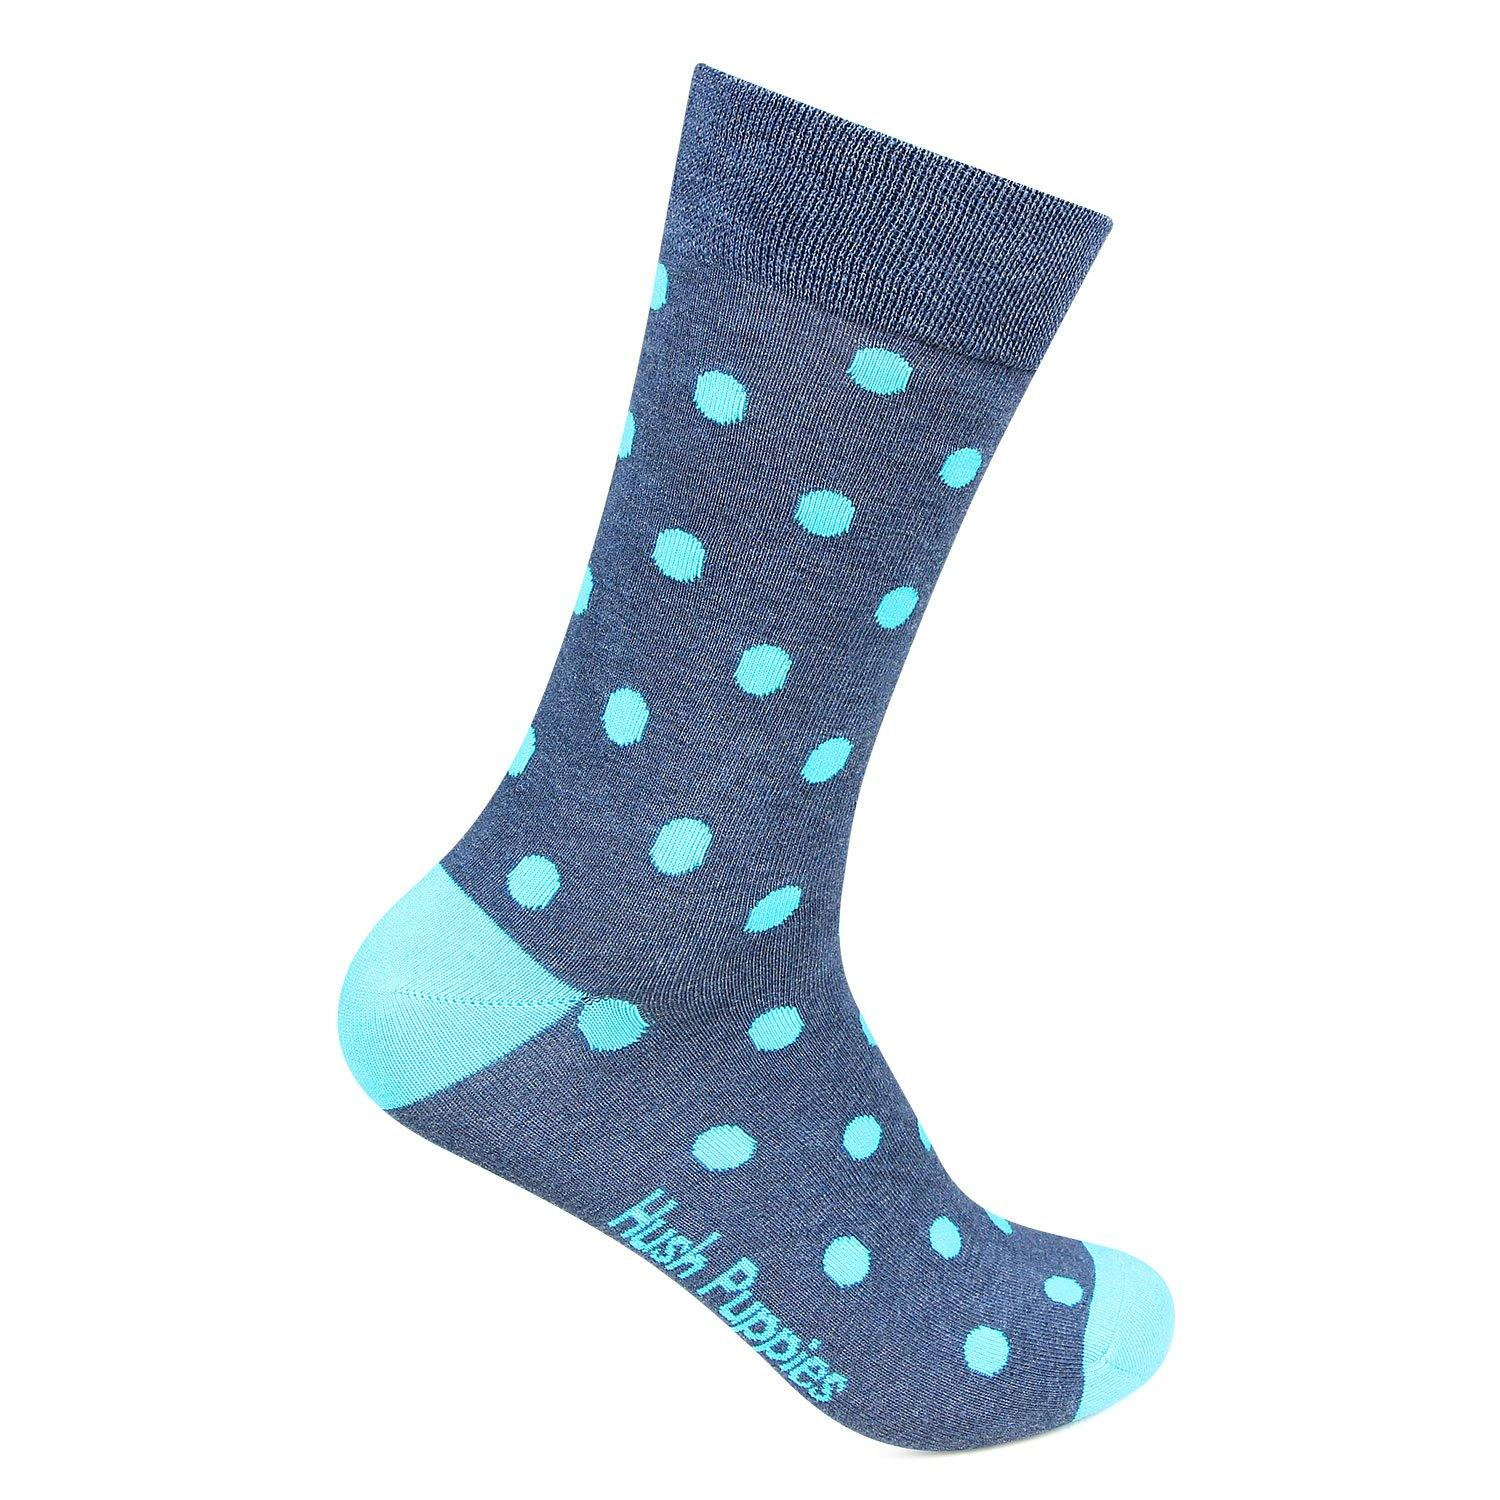 Hush Puppies Men Crew Length Polka Dots Socks